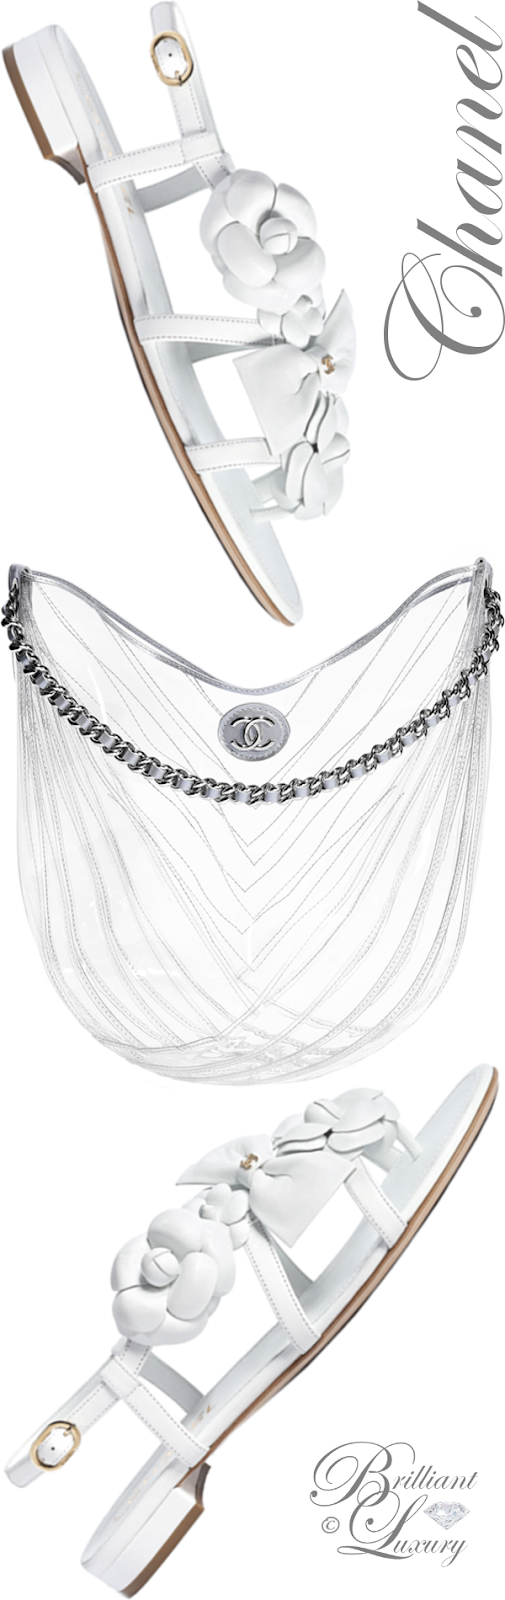 Brilliant Luxury ♦ Chanel pvc metallic calfskin and silver-tone metal transparent hobo handbag and Chanel white flower flat sandals